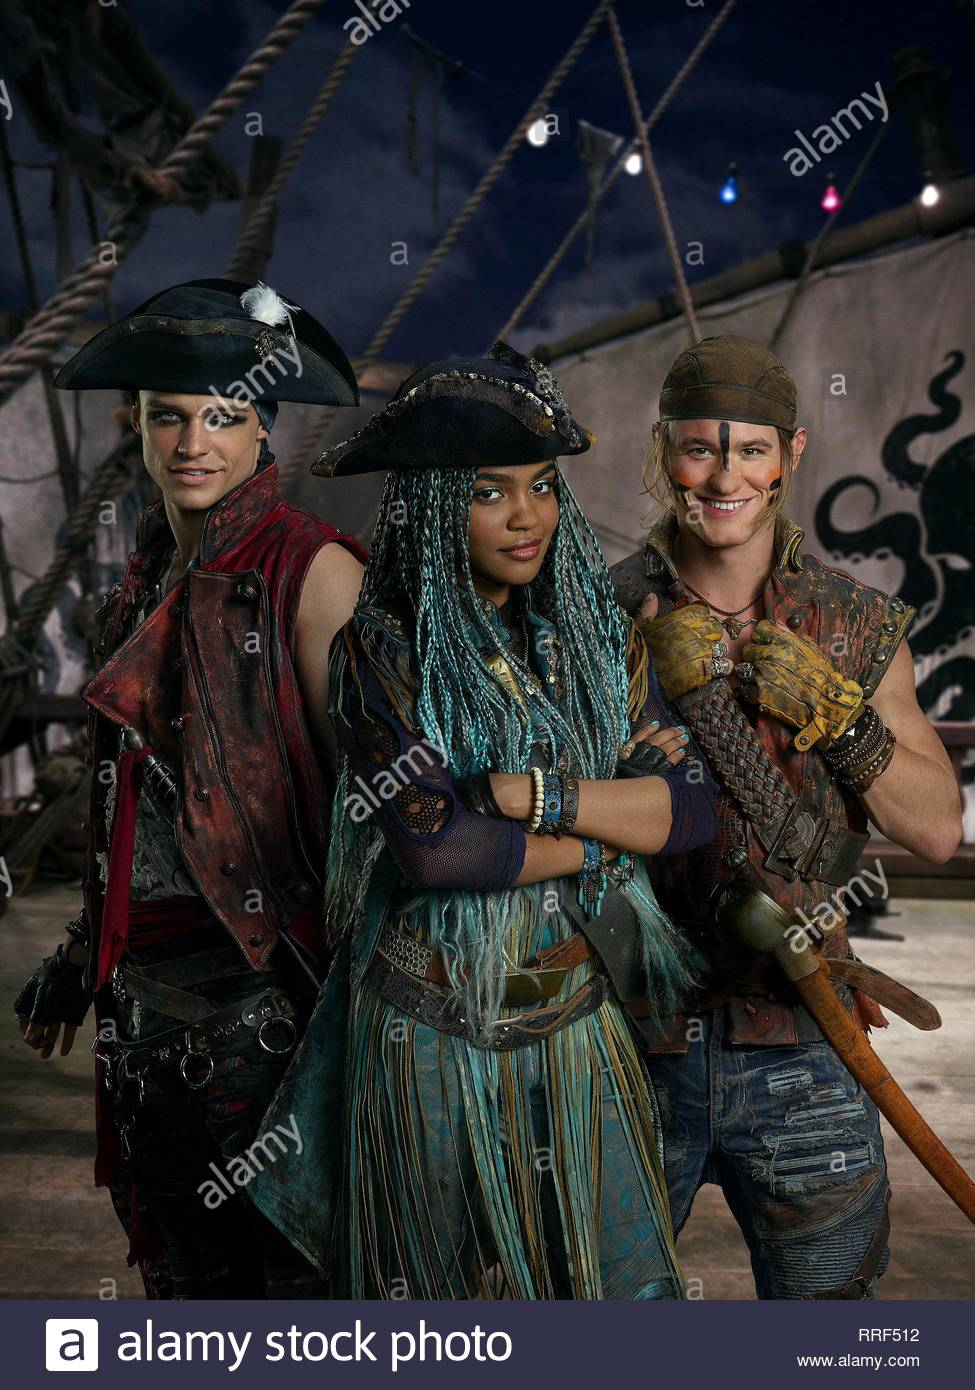 DESCENDANTS 2, THOMAS DOHERTY, CHINA ANNE MCCLAIN , DYLAN PLAYFAIR, 2017 - Stock Image